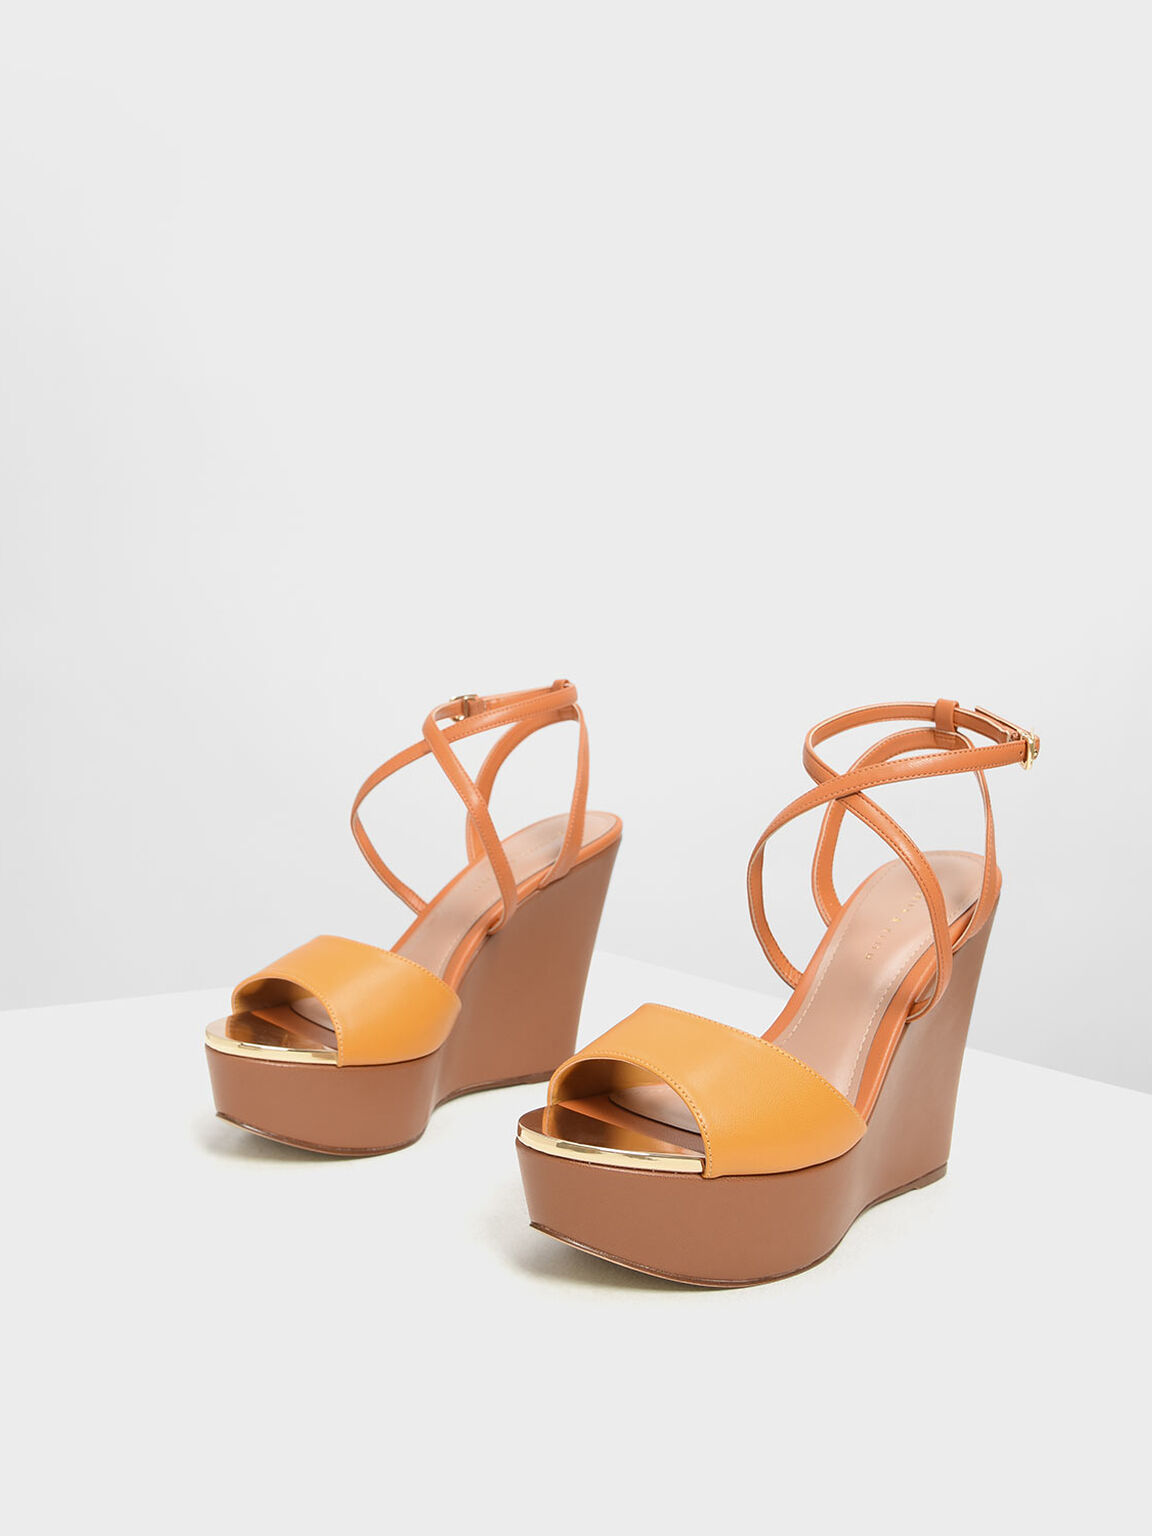 Criss Cross Ankle Strap Wedges, Mustard, hi-res